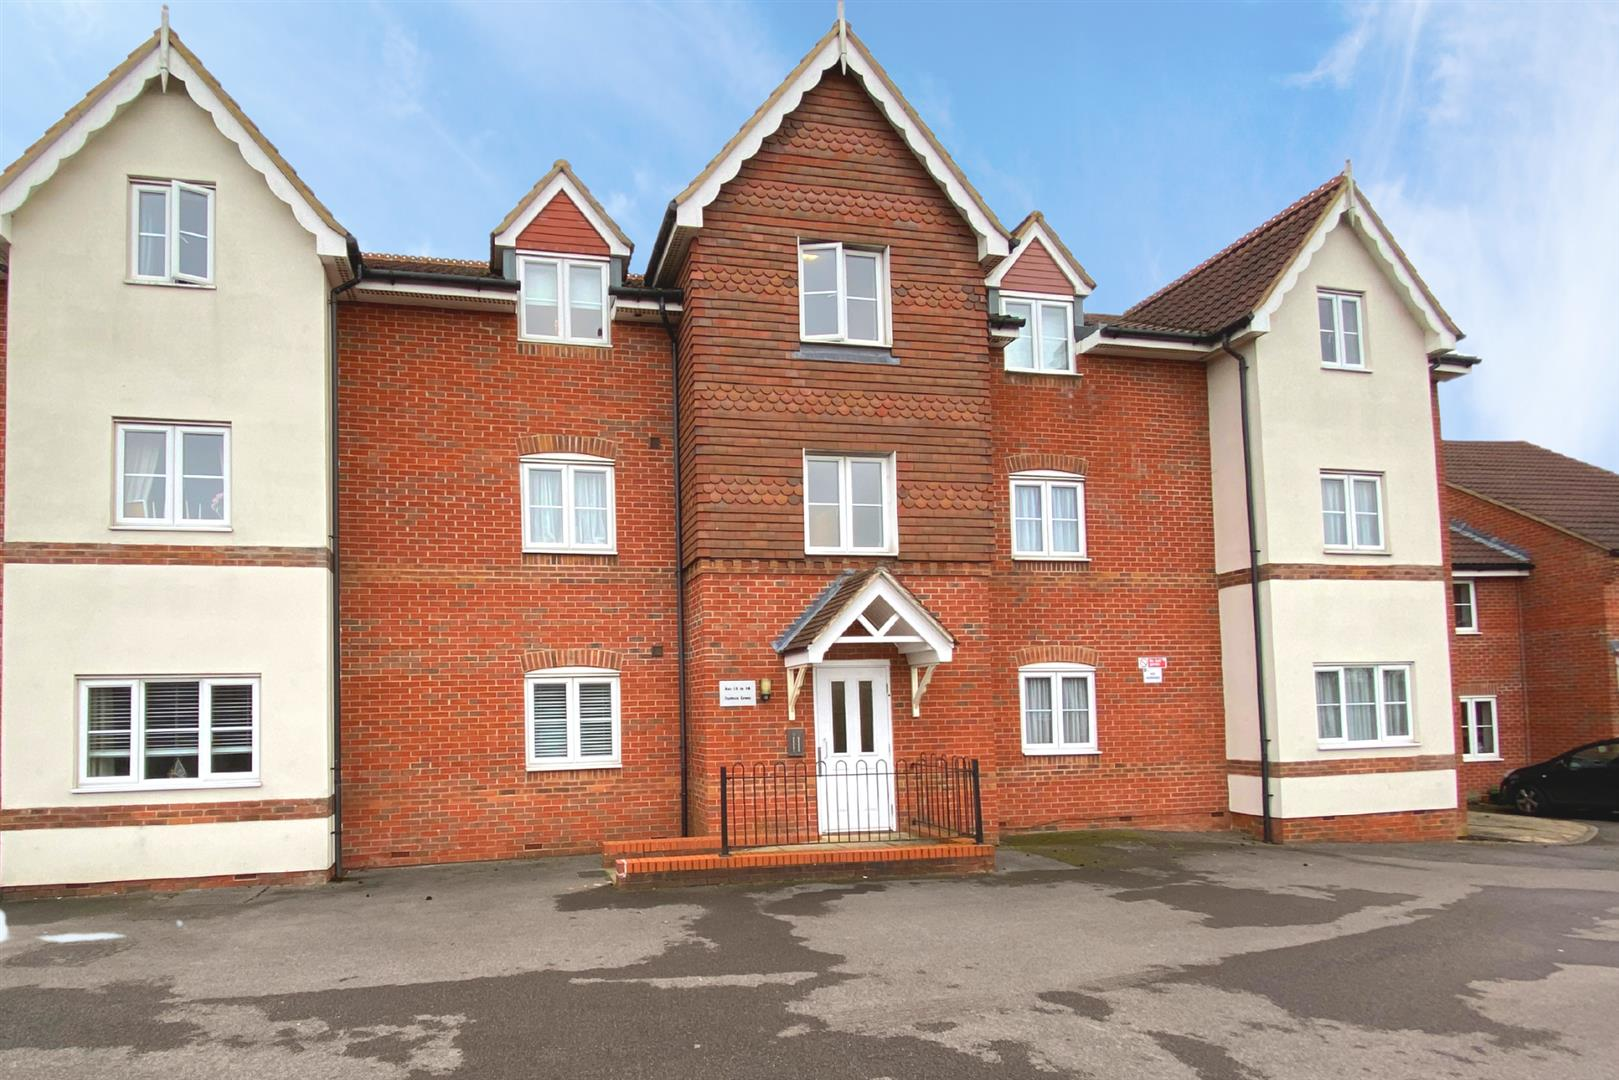 1 bed apartment for sale in Shinfield, RG2